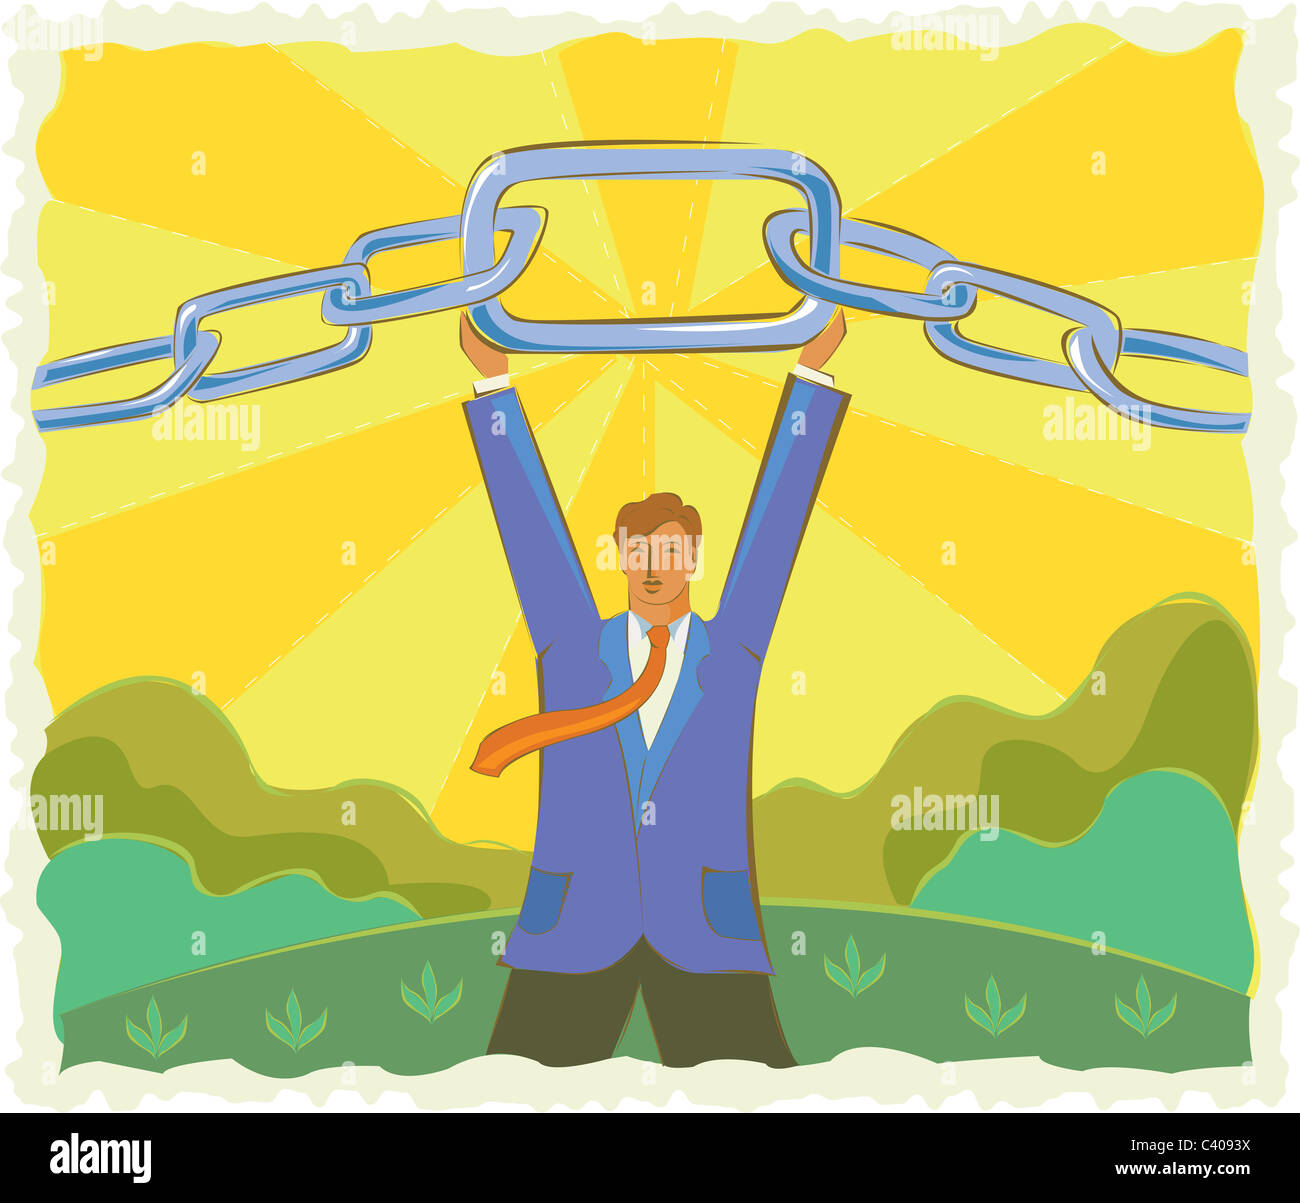 Illustration of a businessman holding a chain - Stock Image